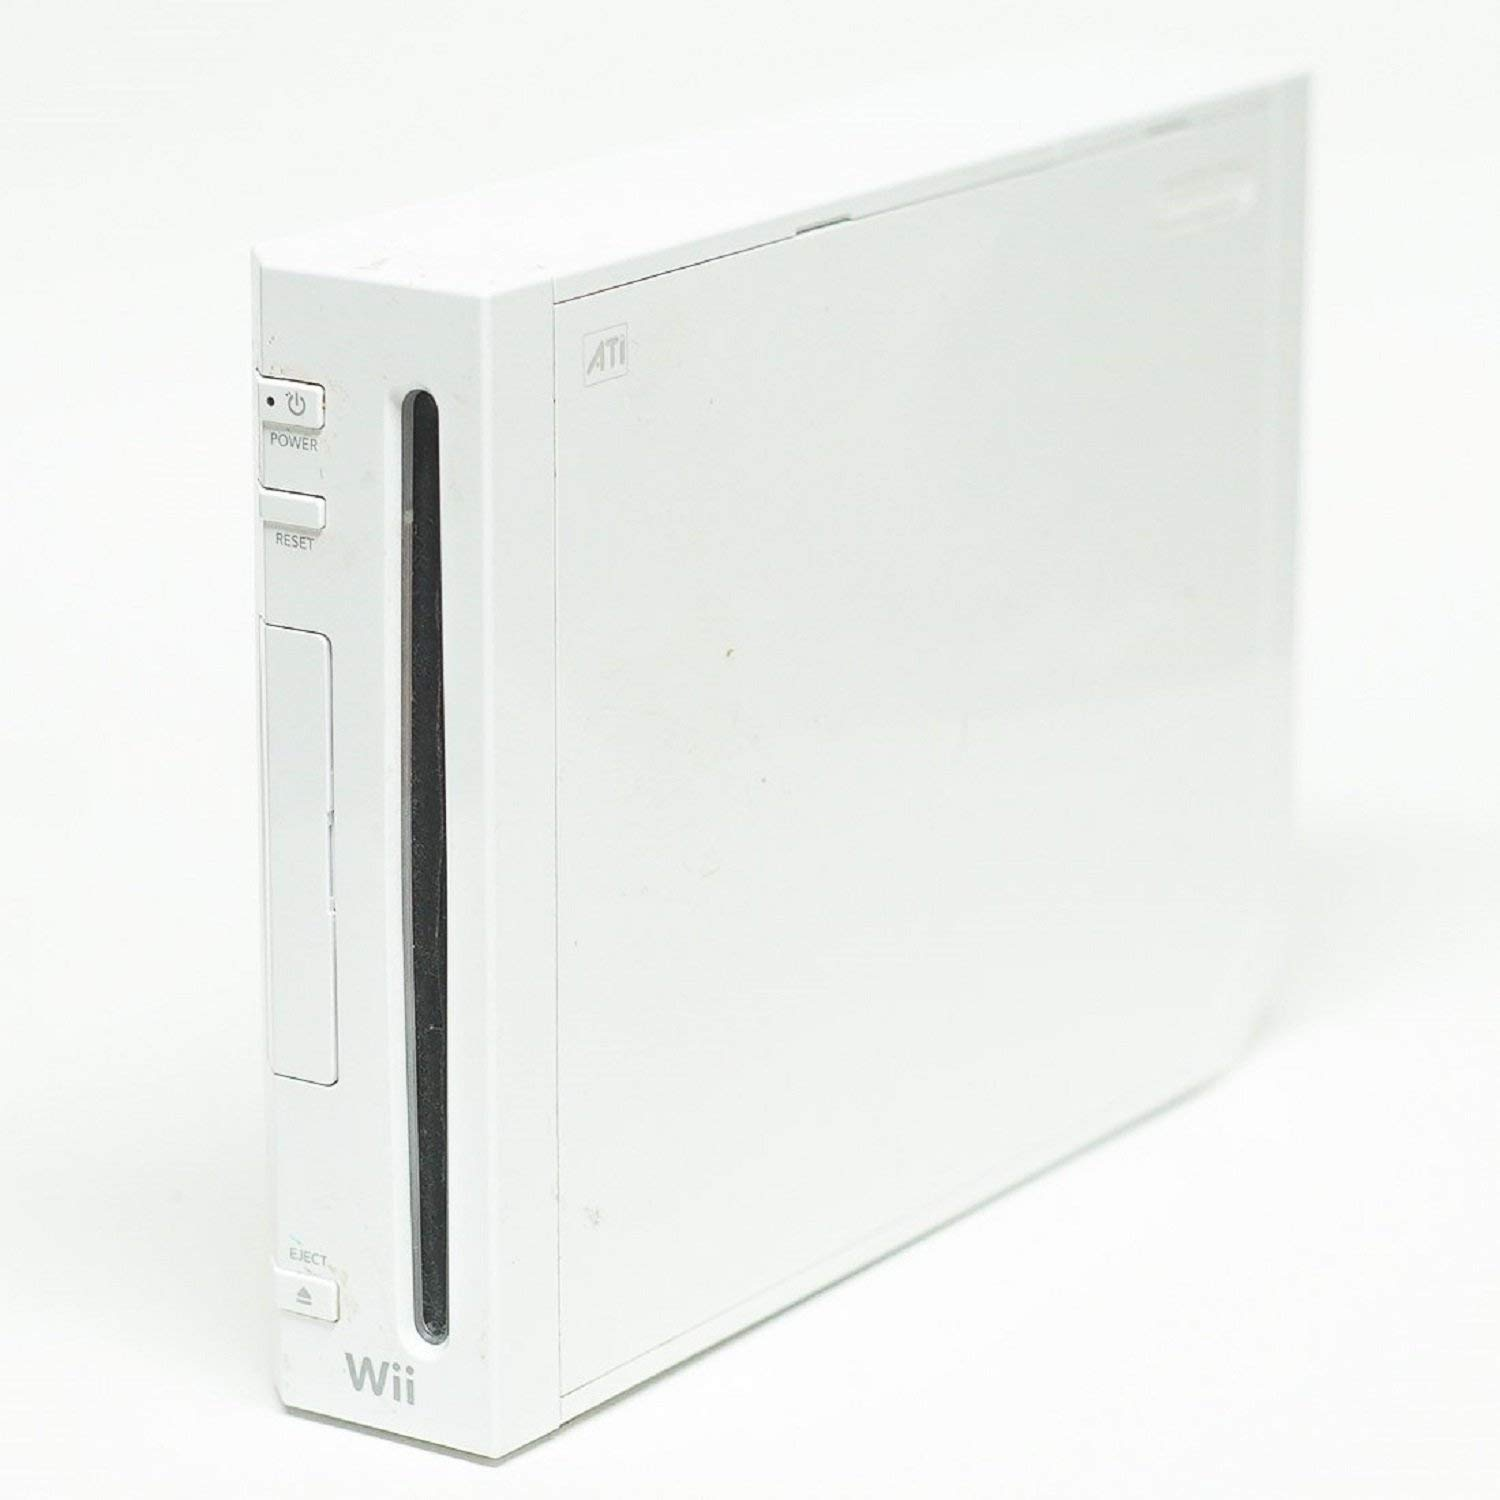 Replacement White Nintendo Wii Console - No Cables Or Accessories  (Certified Refurbished)